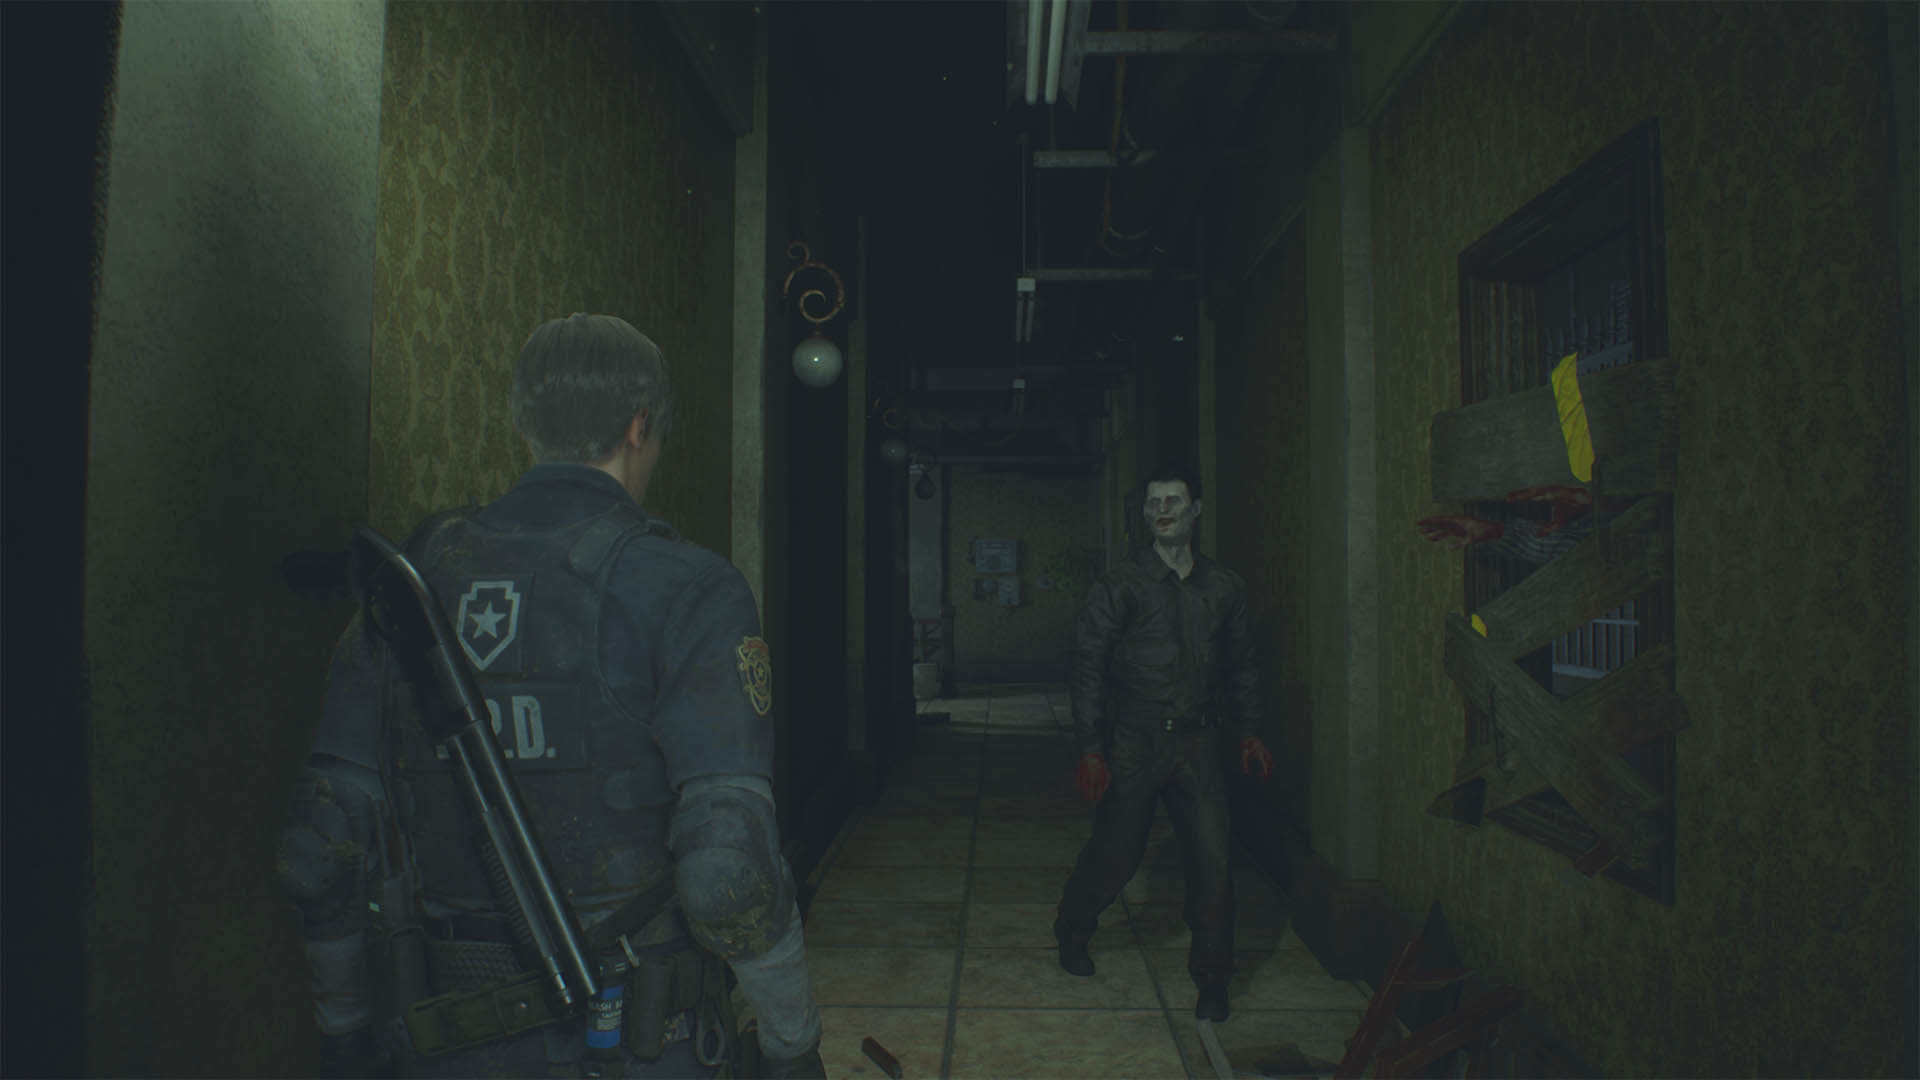 RESIDENT EVIL 2_pasadizos soliloquy 3